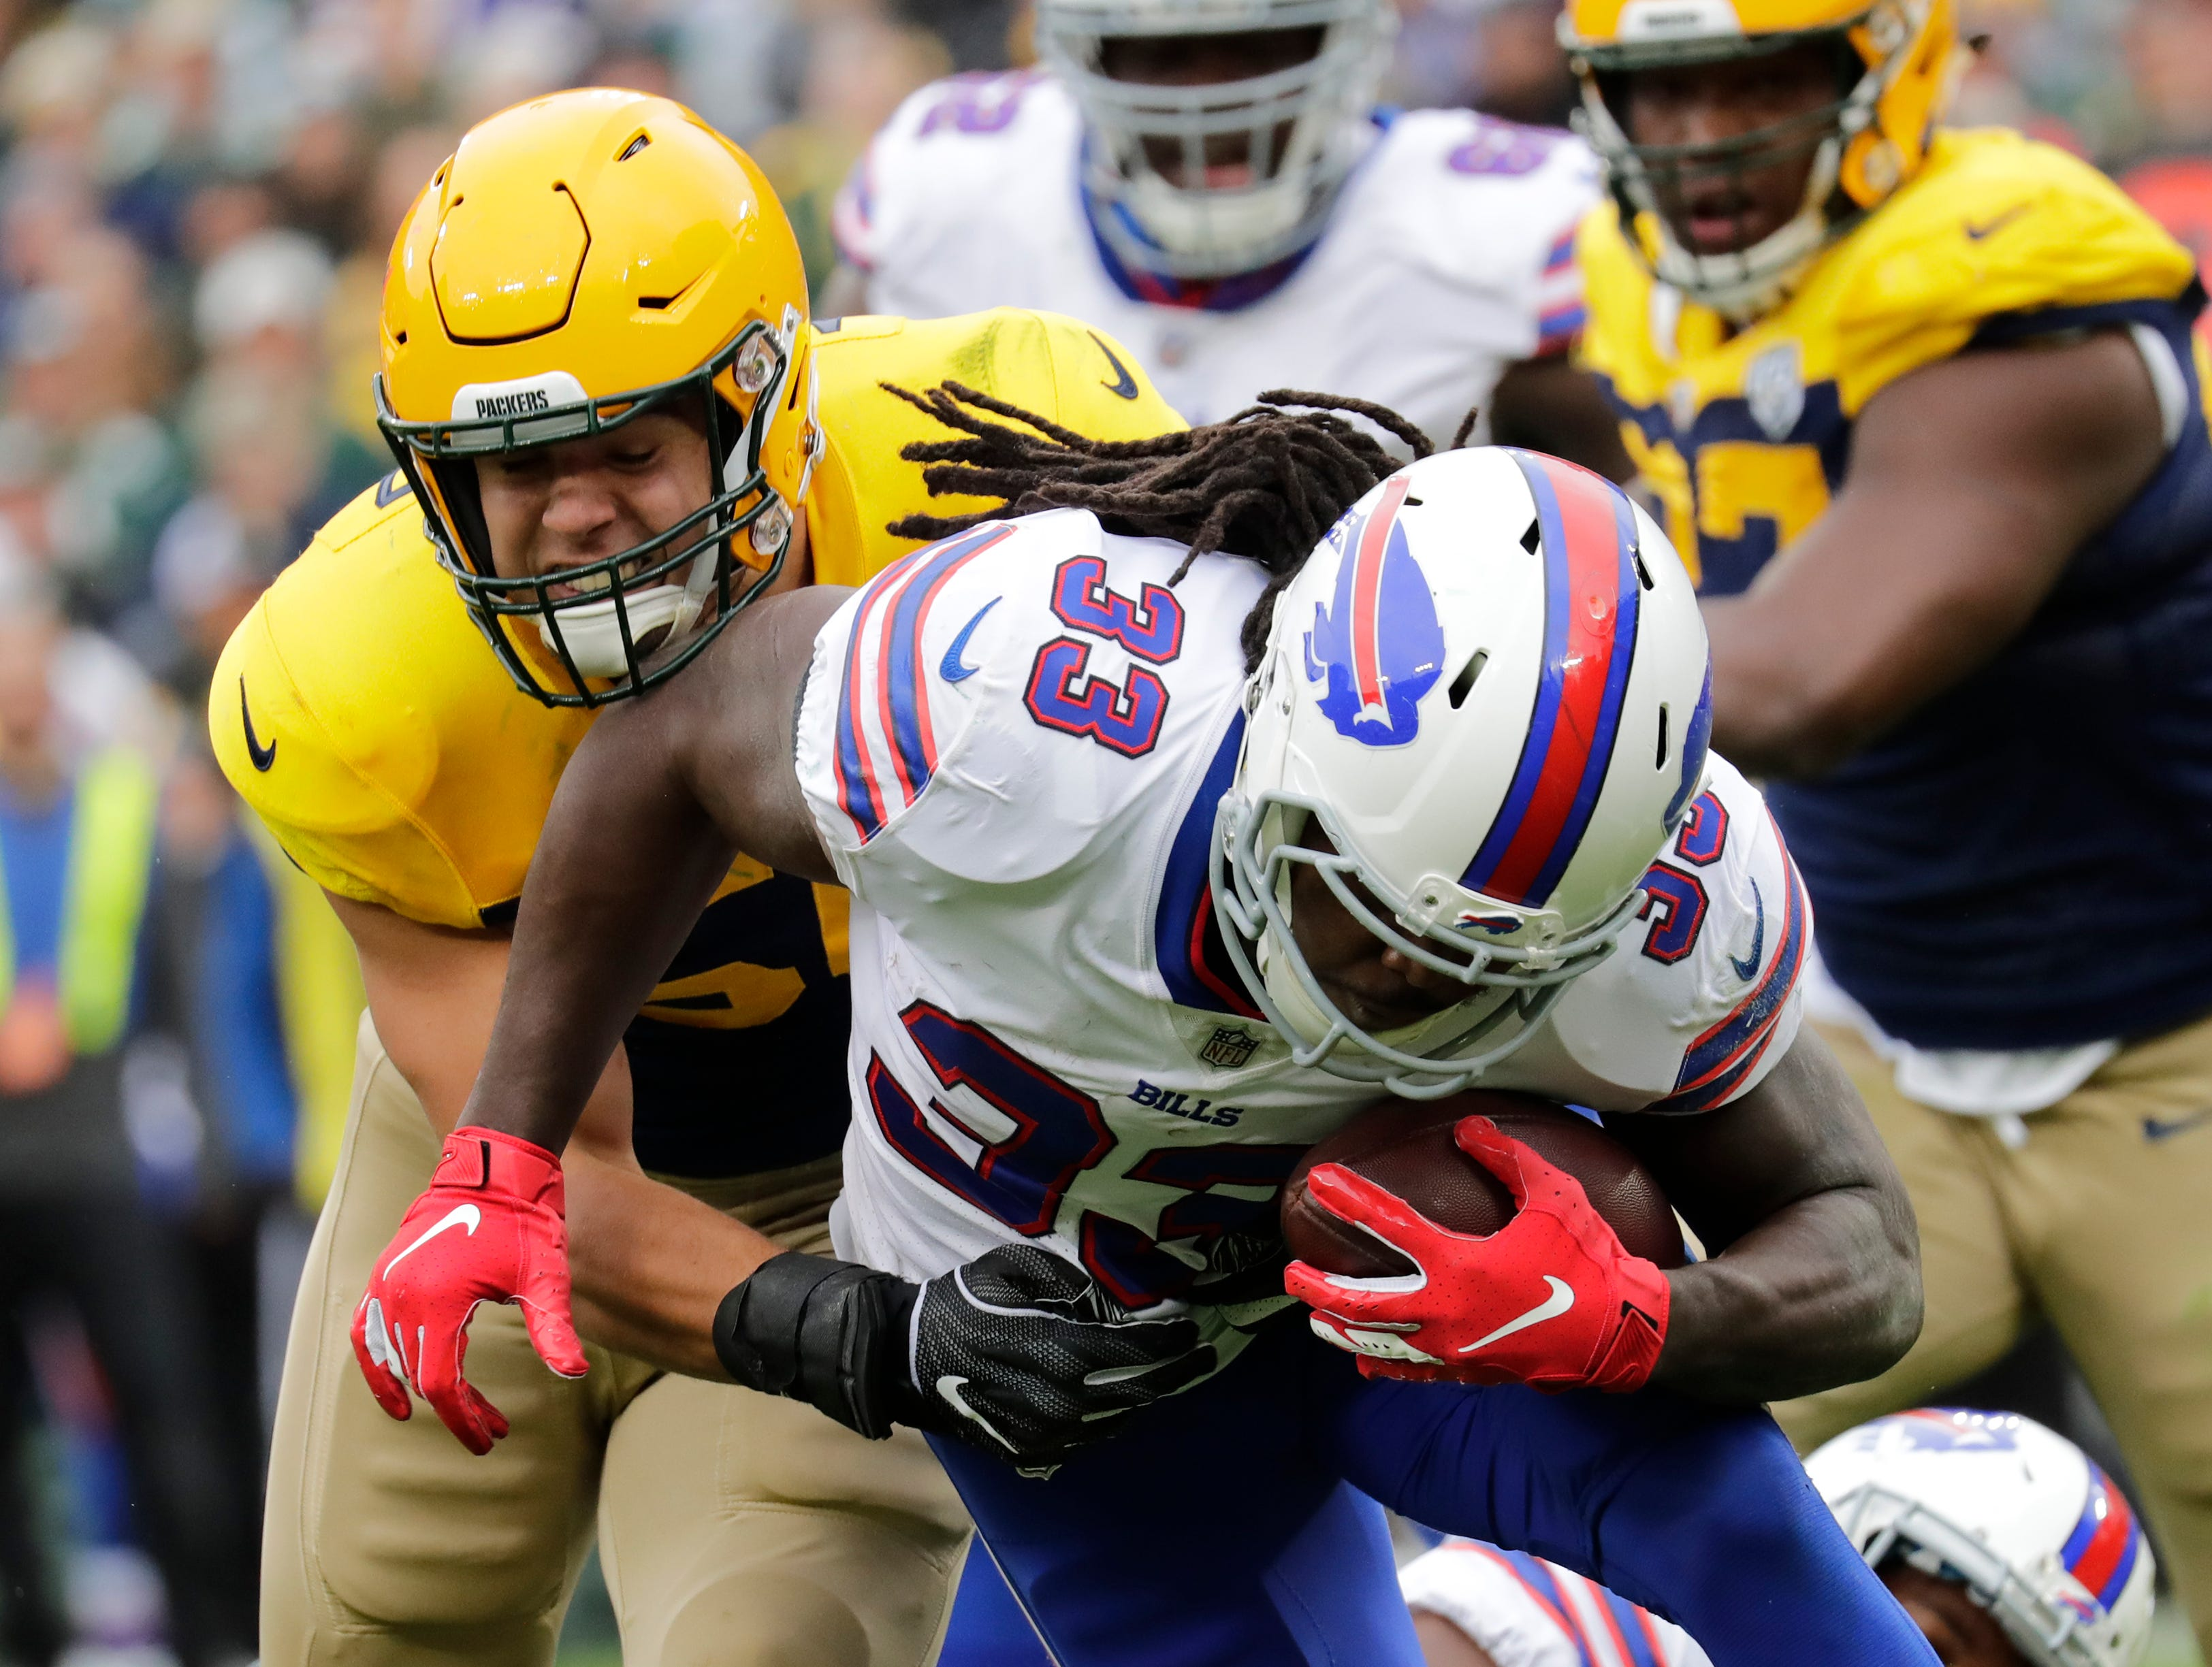 Green Bay Packers linebacker Blake Martinez (50) tackles Buffalo Bills running back Chris Ivory (33) in the secon quarter during their football game Sunday, Sept. 30, 2018, at Lambeau Field in Green Bay, Wis.